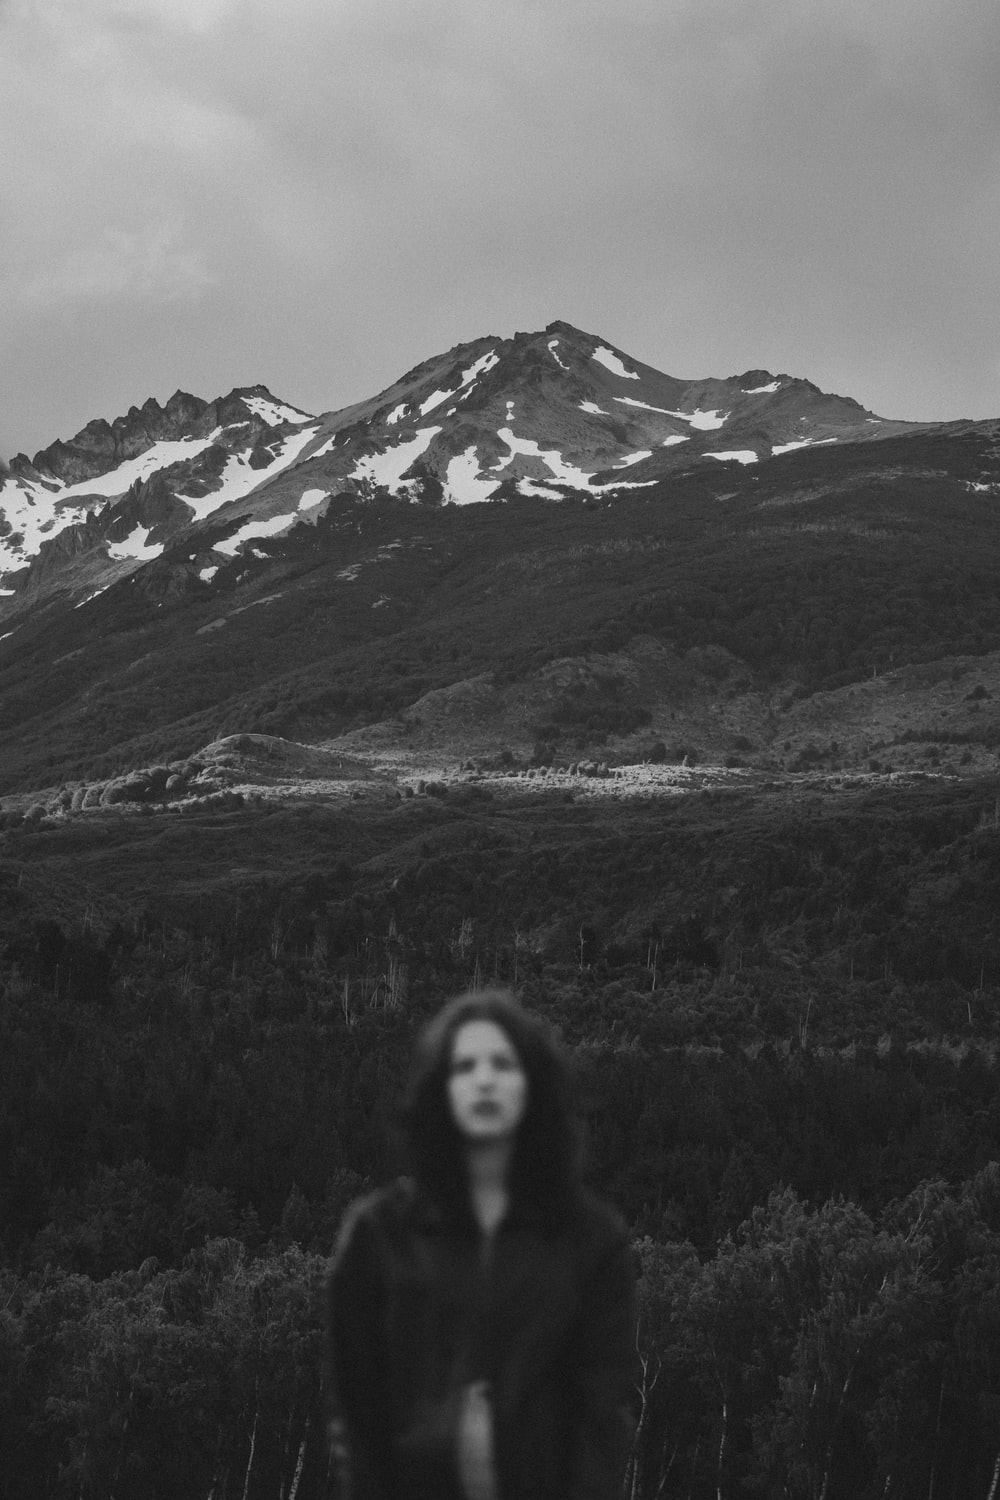 grayscale photo of woman standing on grass field near mountain